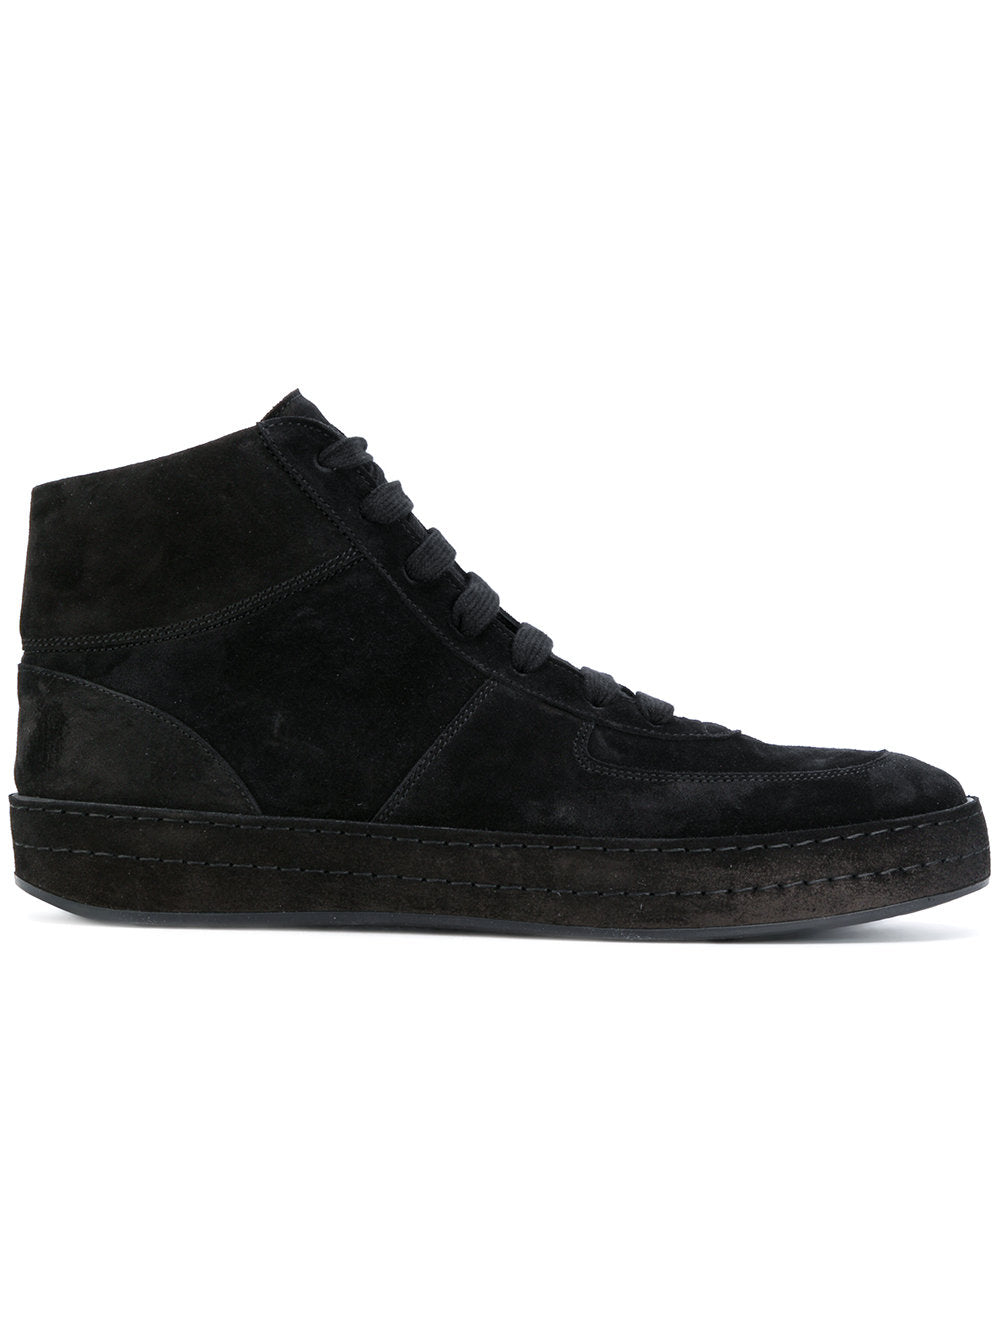 Monochrome Suede High Tops | 1702-4220-354-099